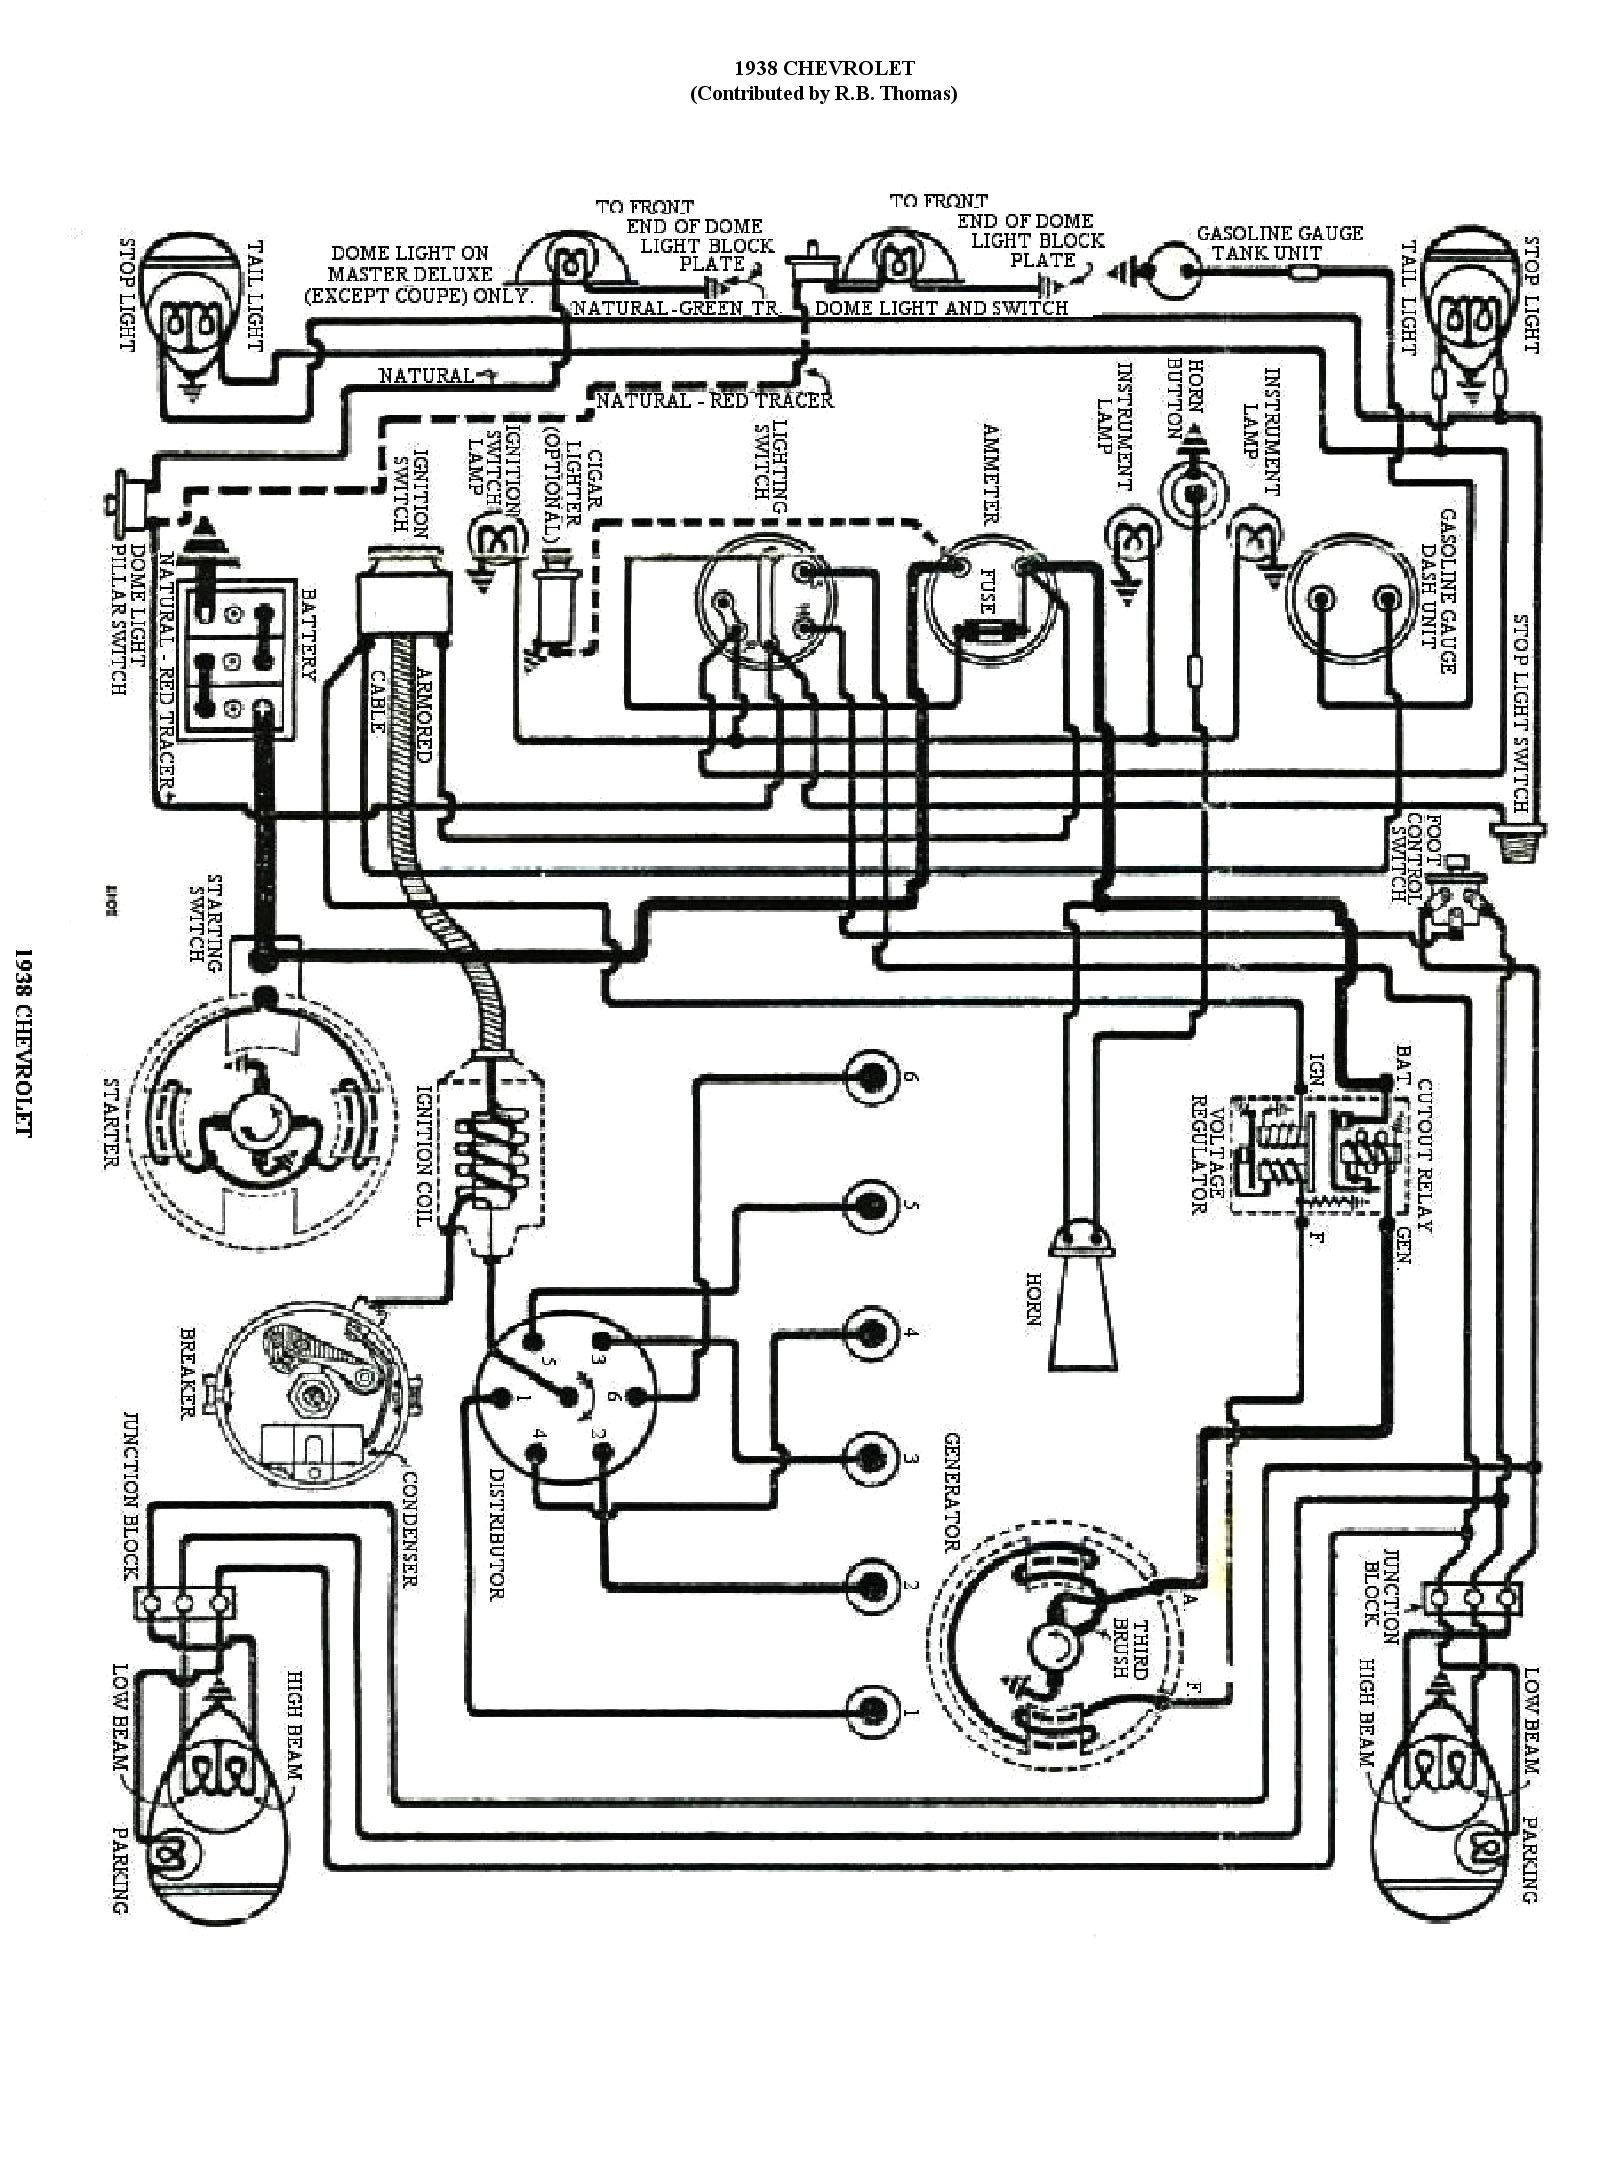 Chevy Wiring Diagrams Painless Dodge Harness 1938